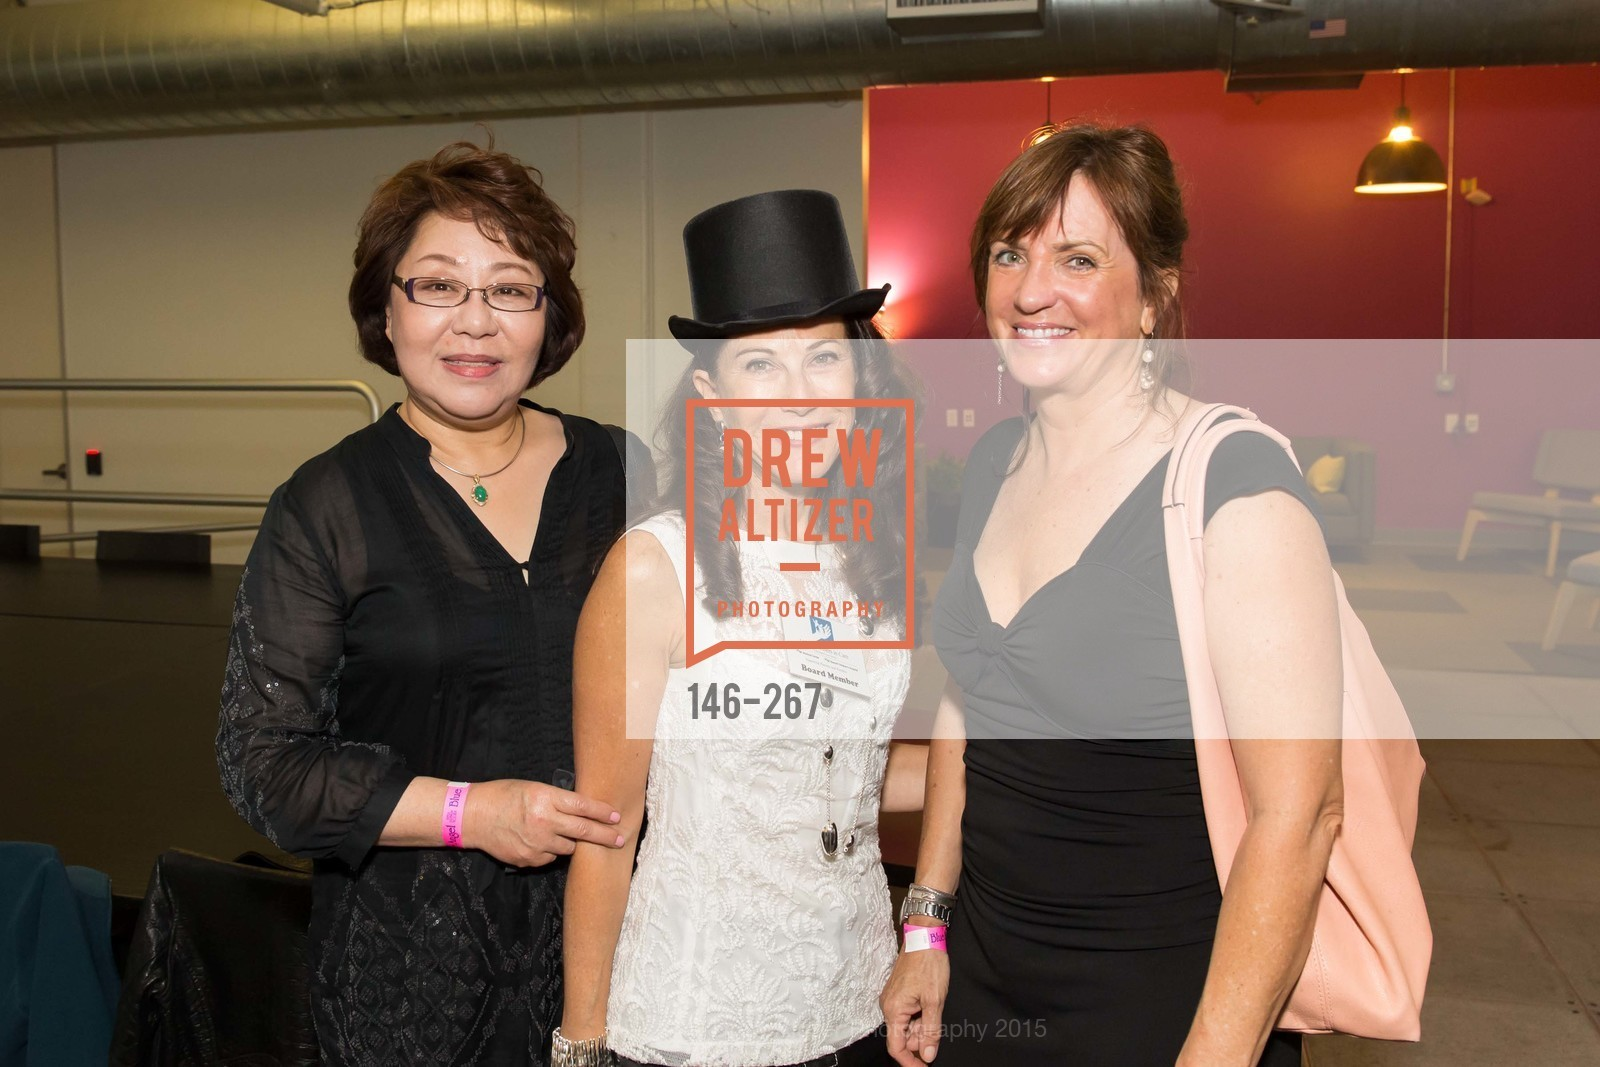 Joanne Ahn, Adrienne Mally, Dana Cattiello, Pre-Party for Cirque du Soiree 2015, If(we.co) Headquarters. 848 Battery St, August 27th, 2015,Drew Altizer, Drew Altizer Photography, full-service event agency, private events, San Francisco photographer, photographer California